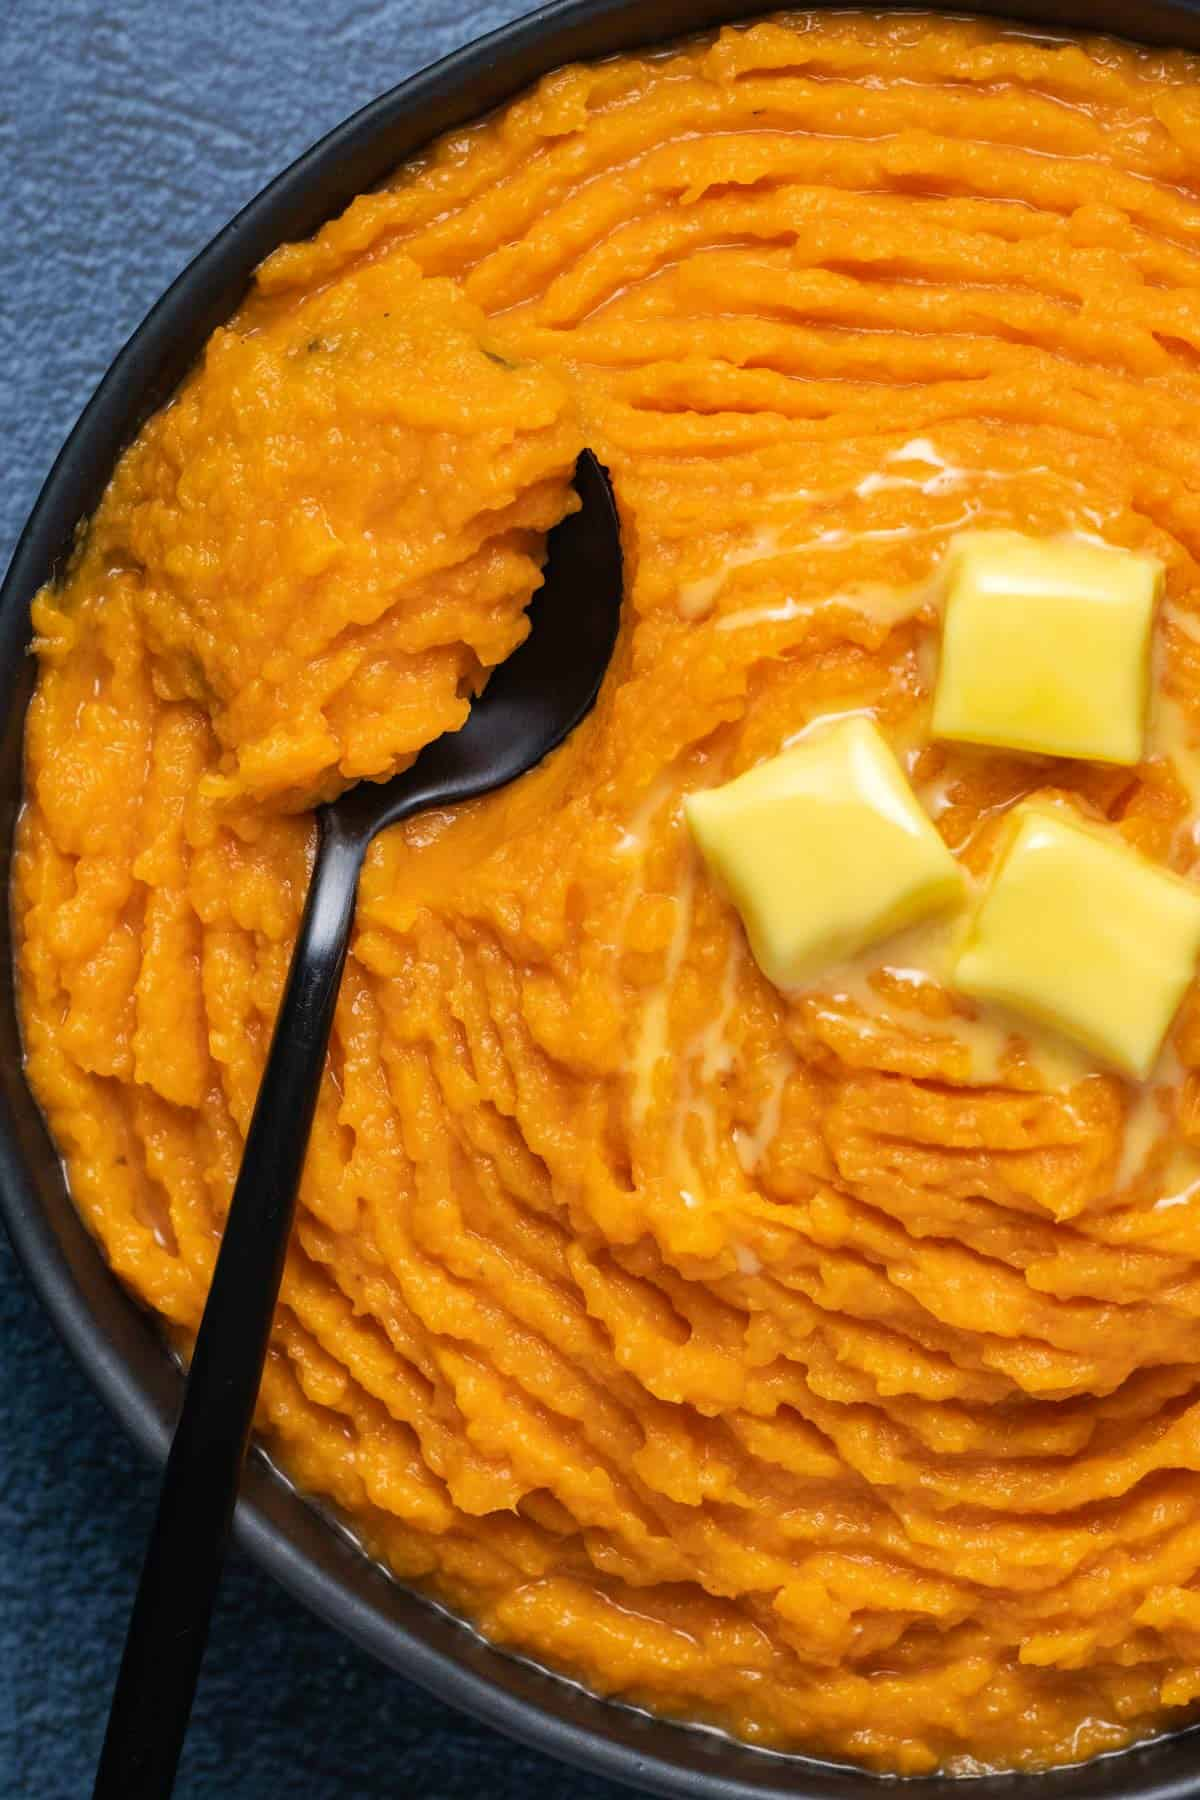 Vegan mashed sweet potatoes in a black bowl with a spoon.